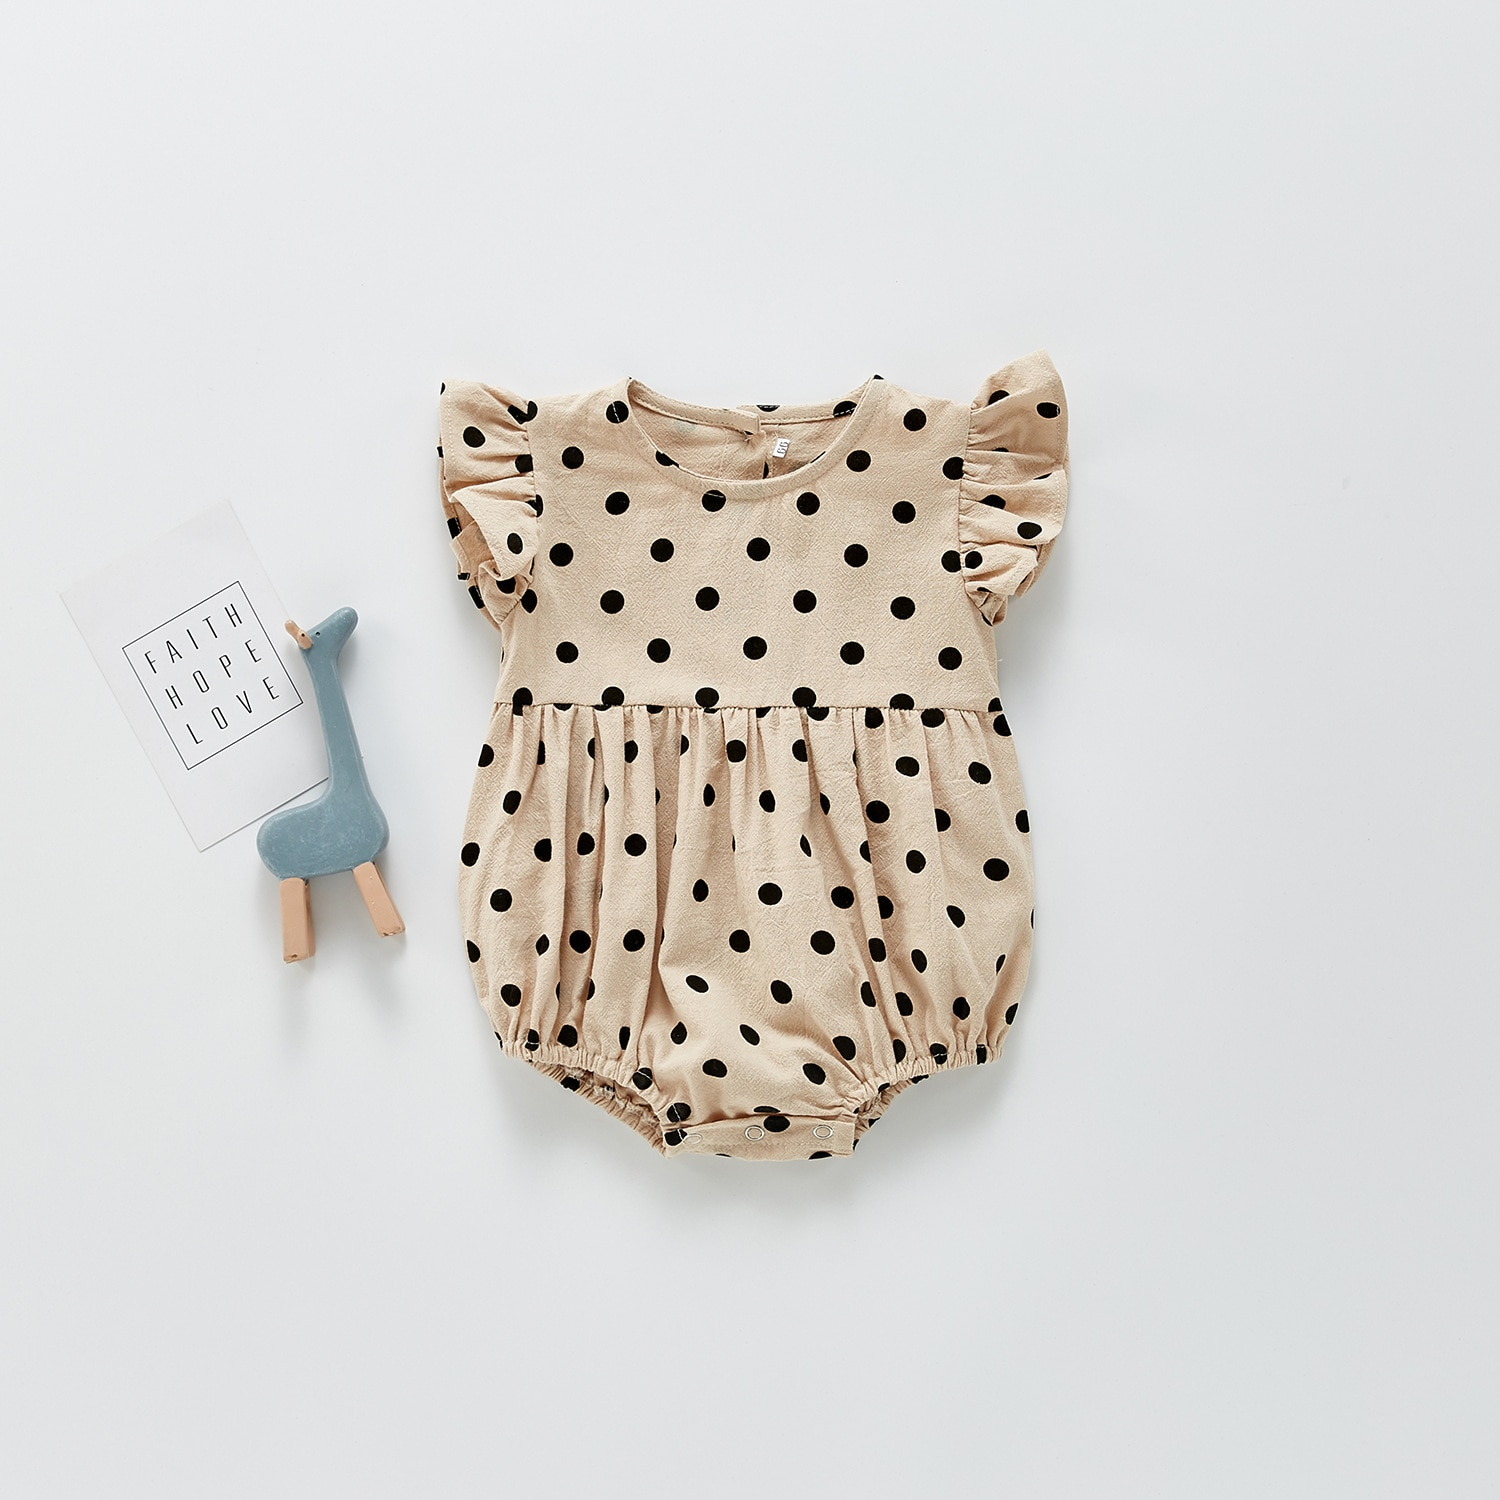 Yg Brand baby clothes 2021 summer new Korean baby wave point SHORT SLEEVE BODYSUIT triangle climbing